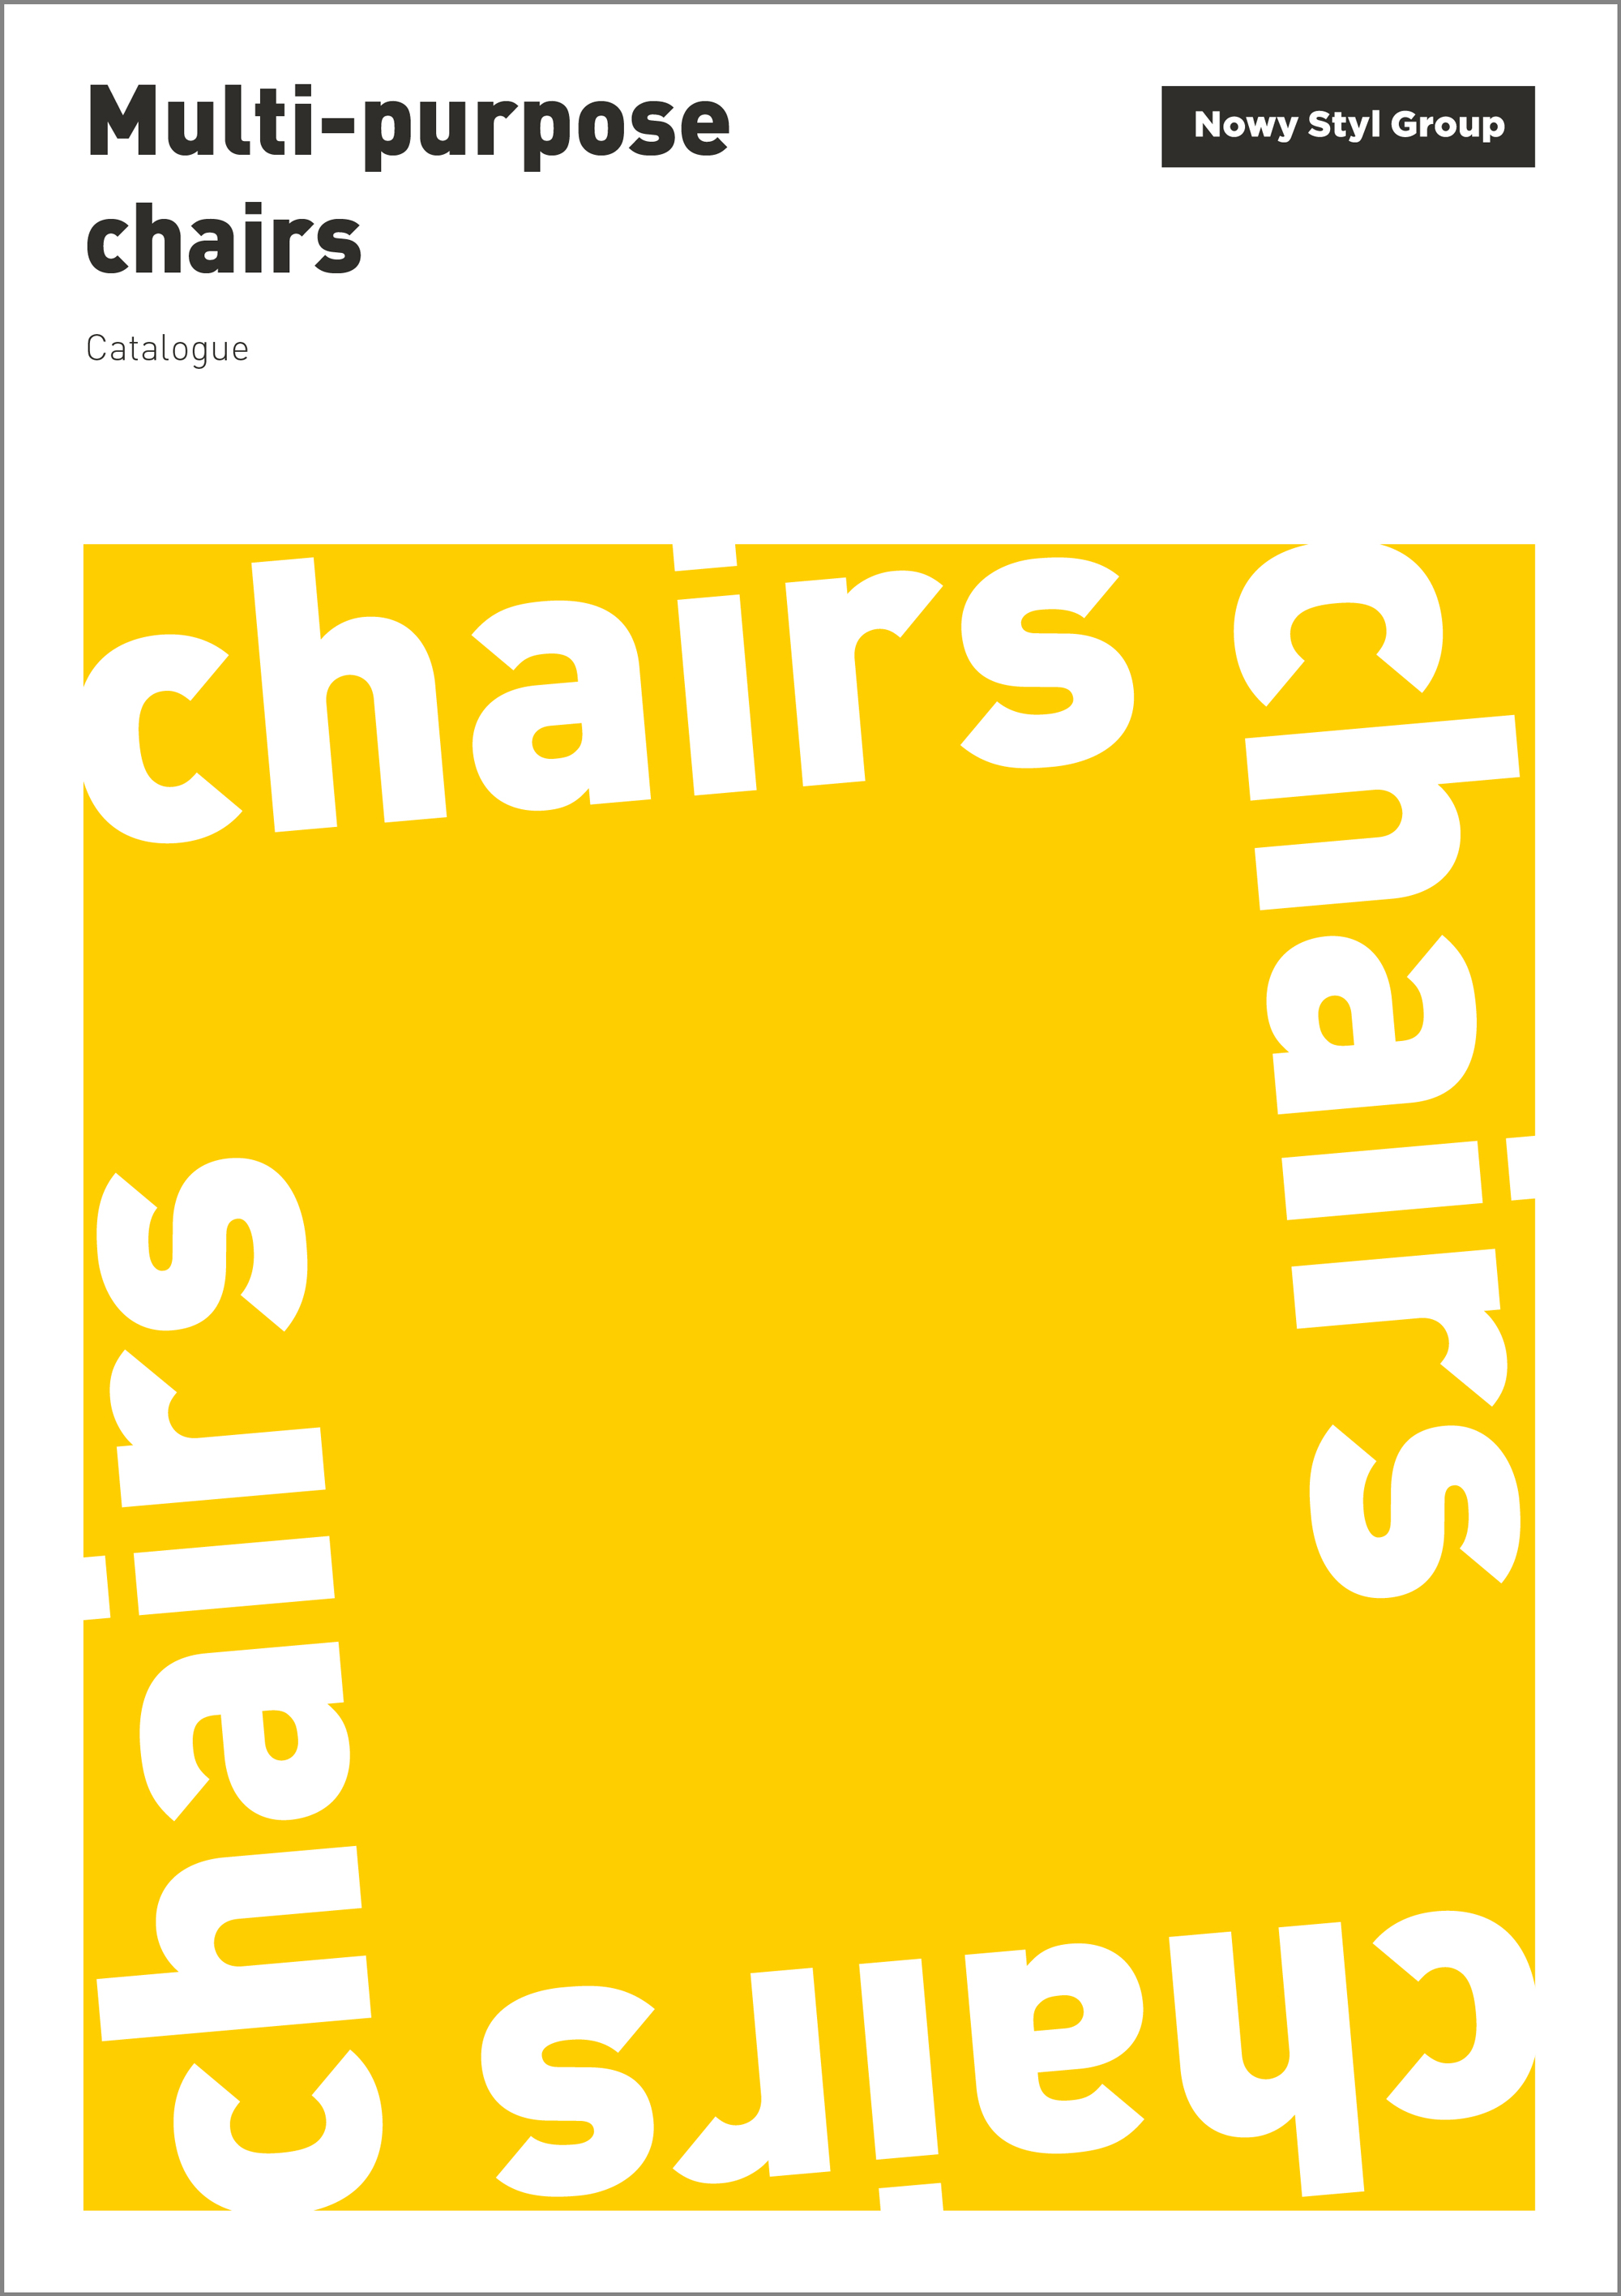 NS catalogue Chairs